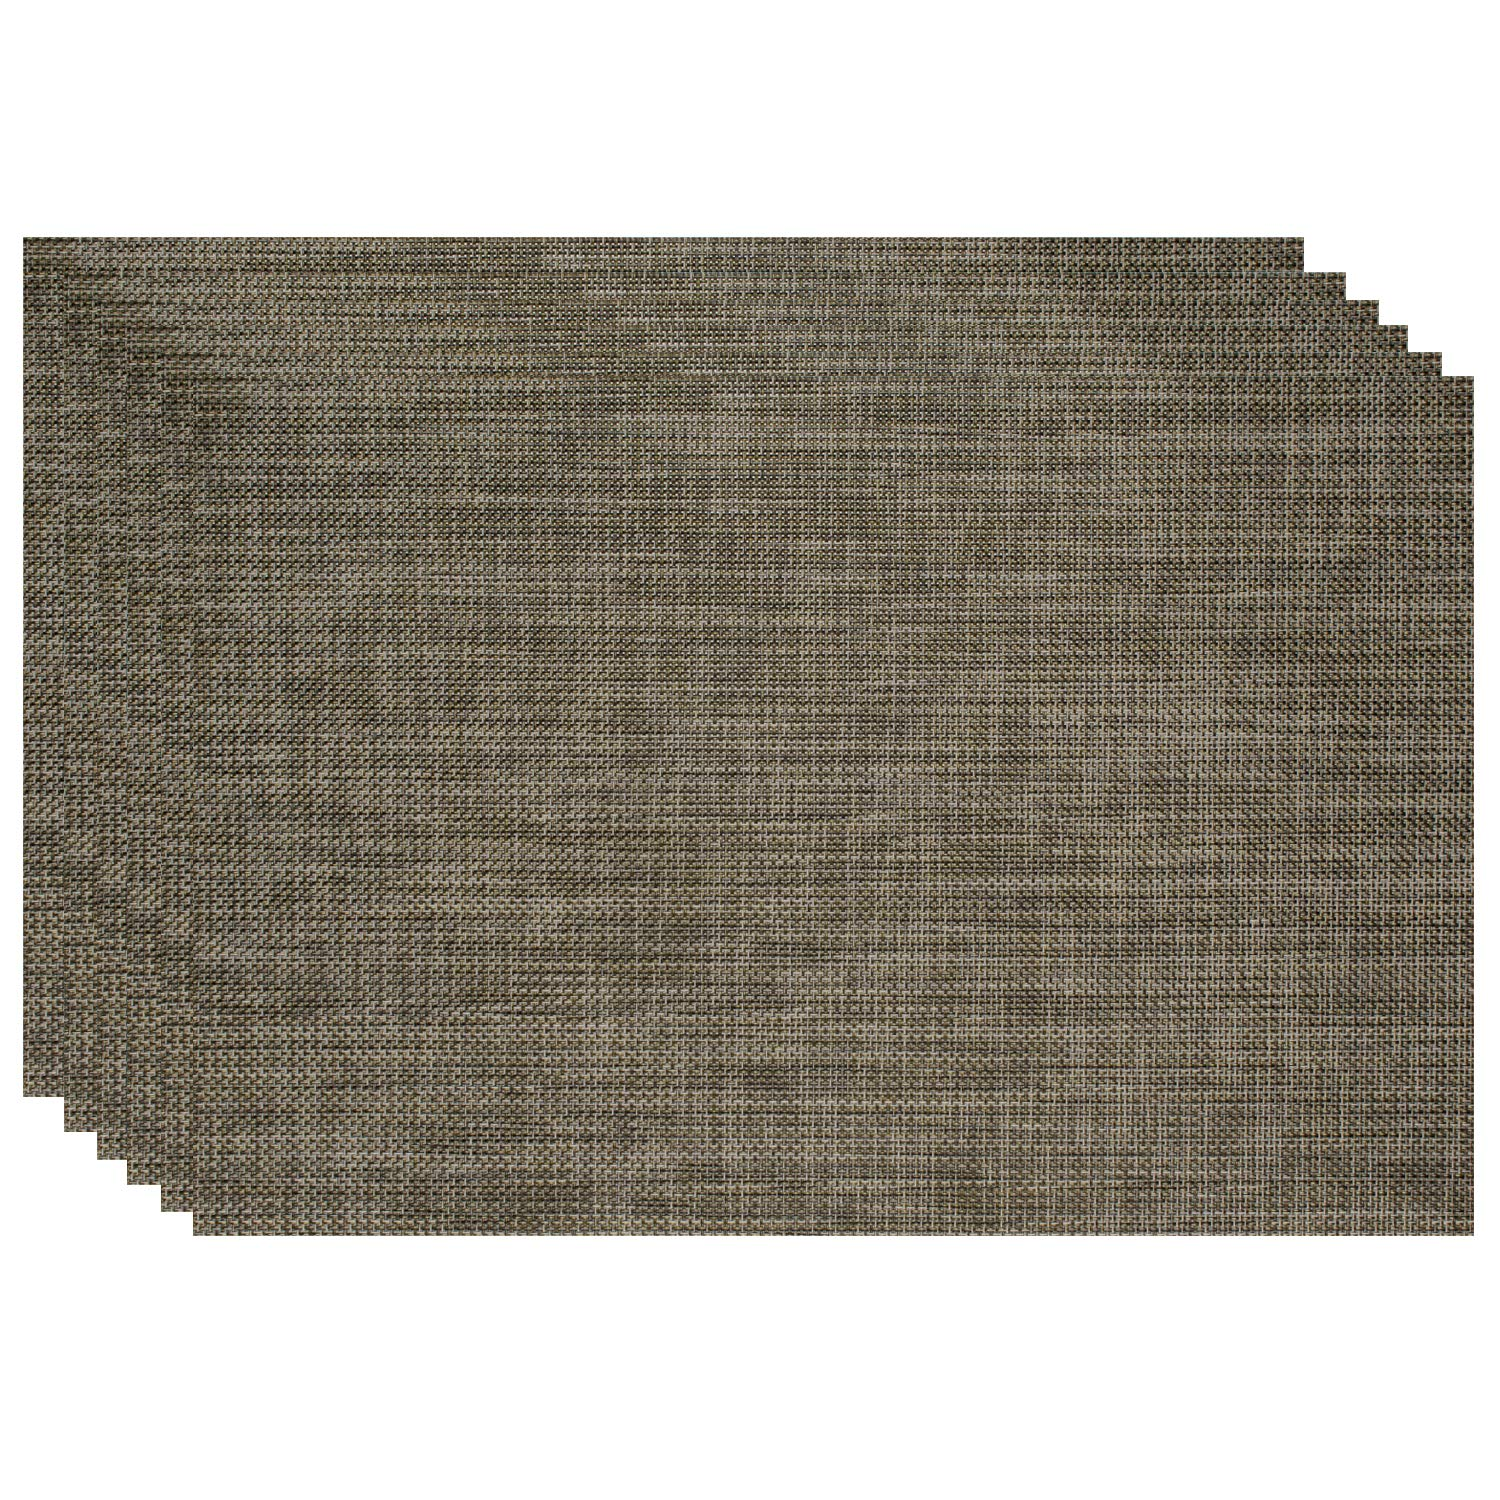 6, Light Coffee Warekin 4-Piece Placemats PVC Woven Placemat Large Lattice Table mats for Kitchen Outdoor